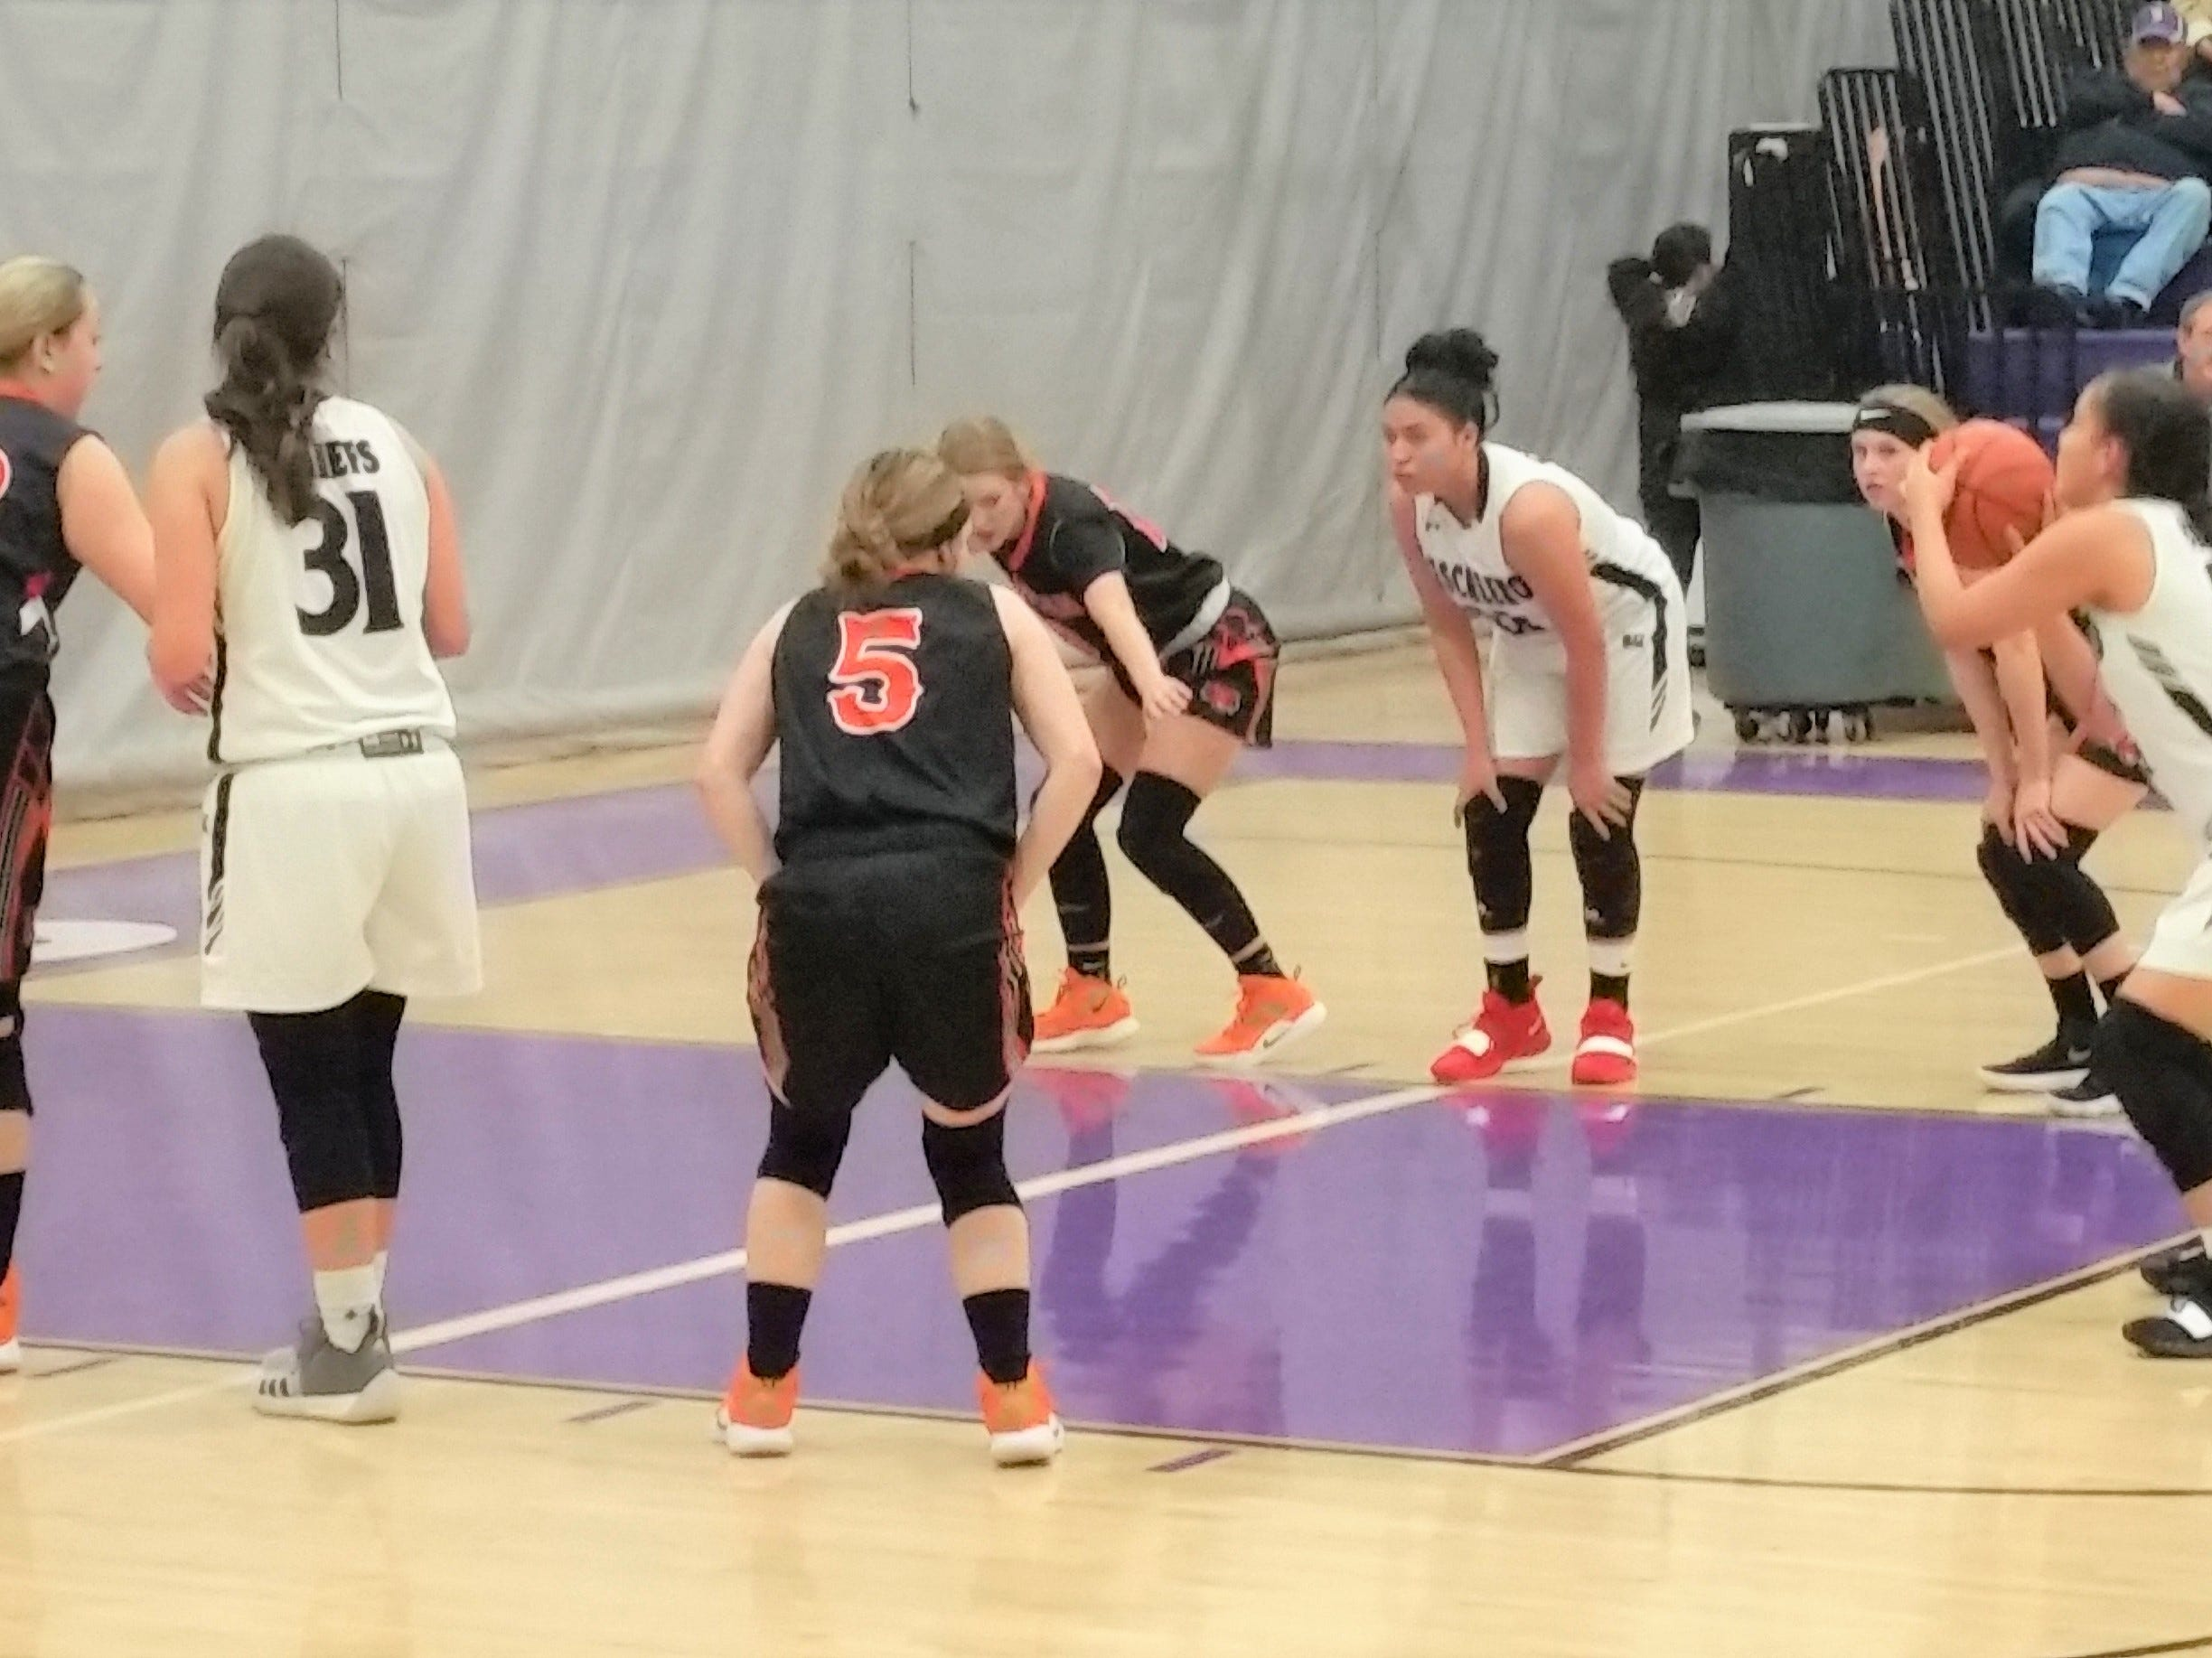 The Mescalero Lady Chiefs show off their skills at a game. The team will be hosting the district championship on March 8.